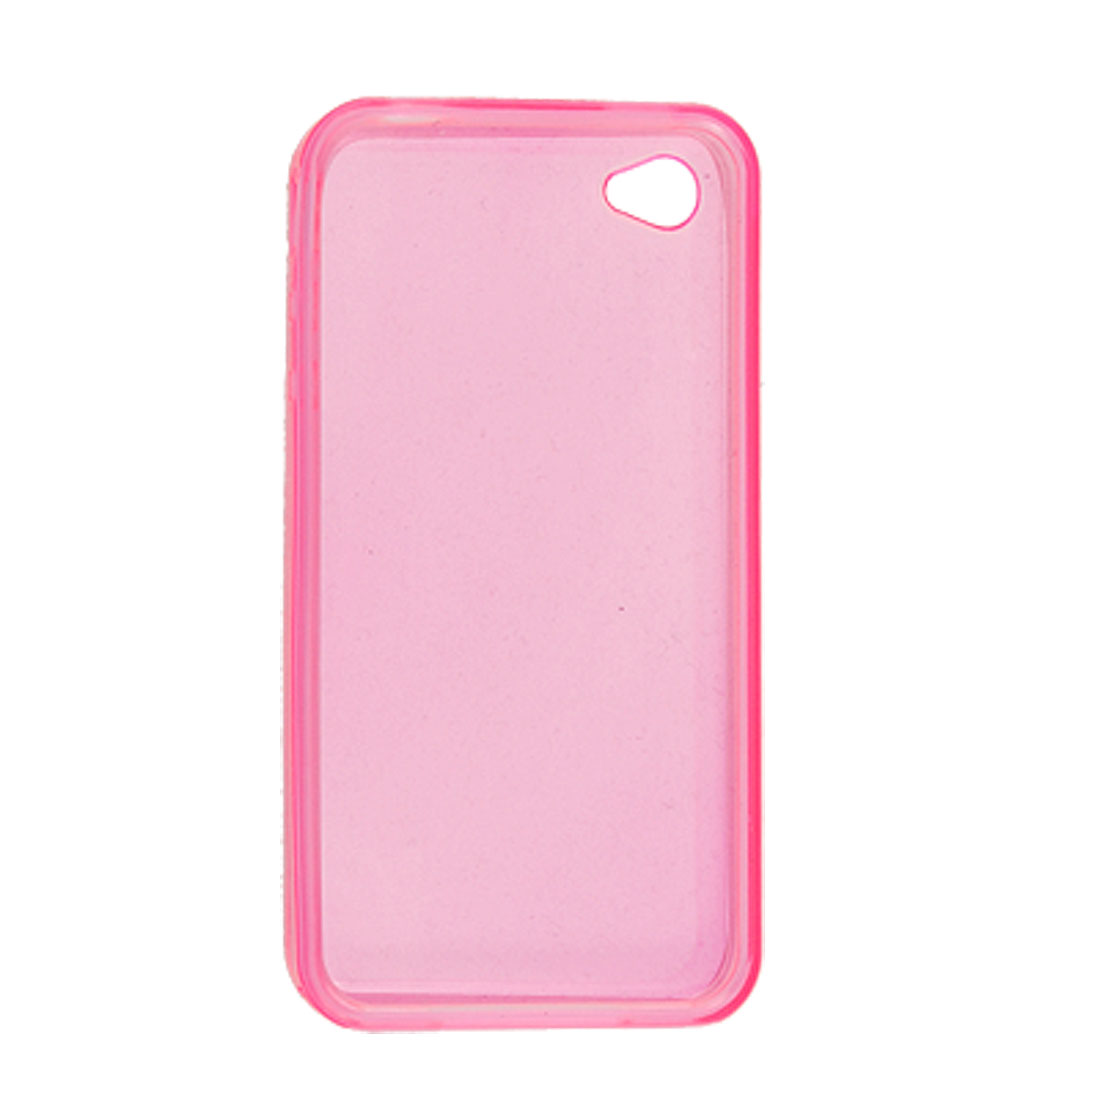 Soft Plastic Skin Clear Pink Back Protector for iPhone 4